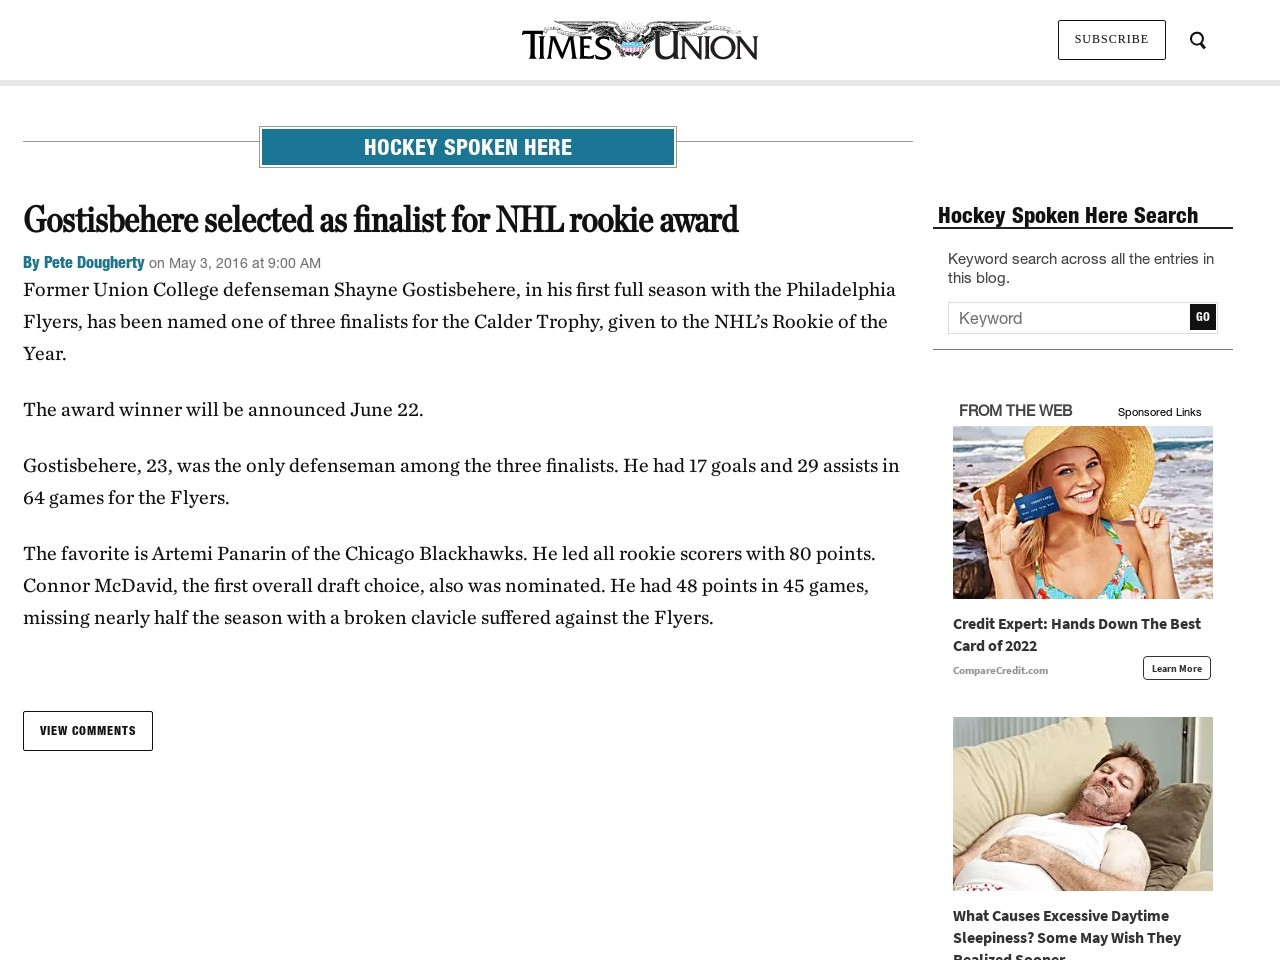 Gostisbehere selected as finalist for NHL rookie award